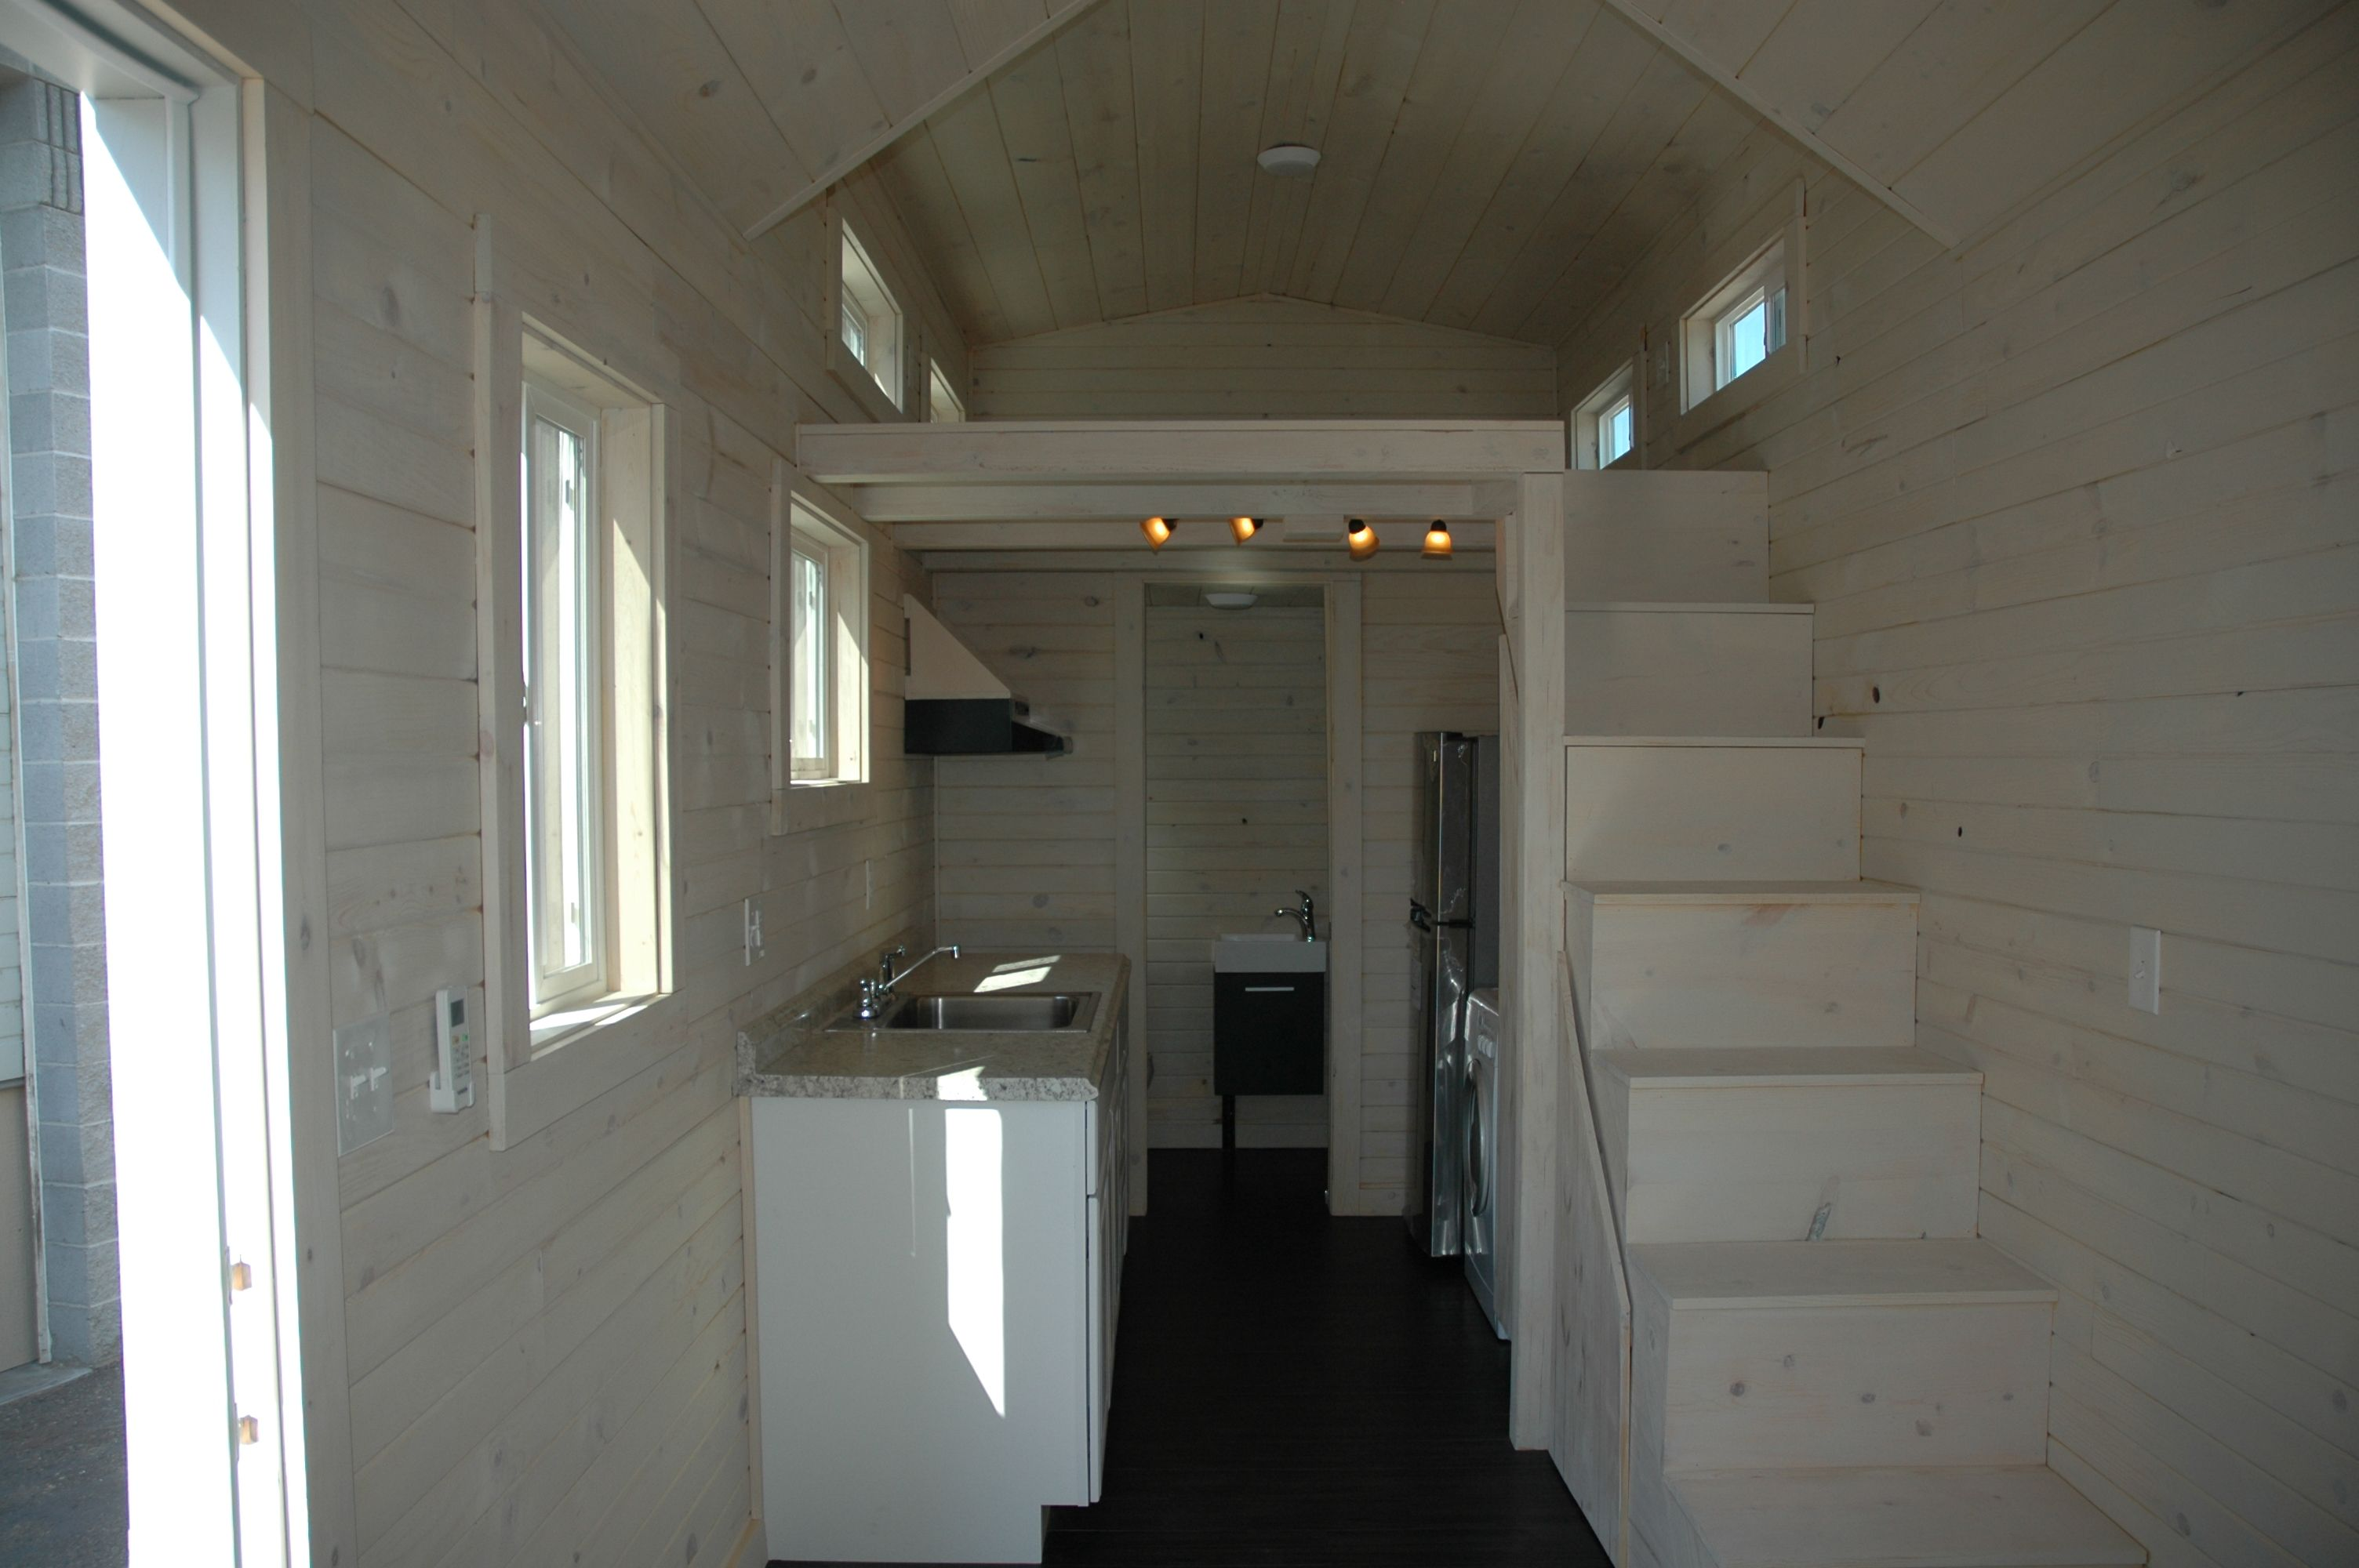 Home interior stairs natural walls loft kitchen area stairs tiny house interior of